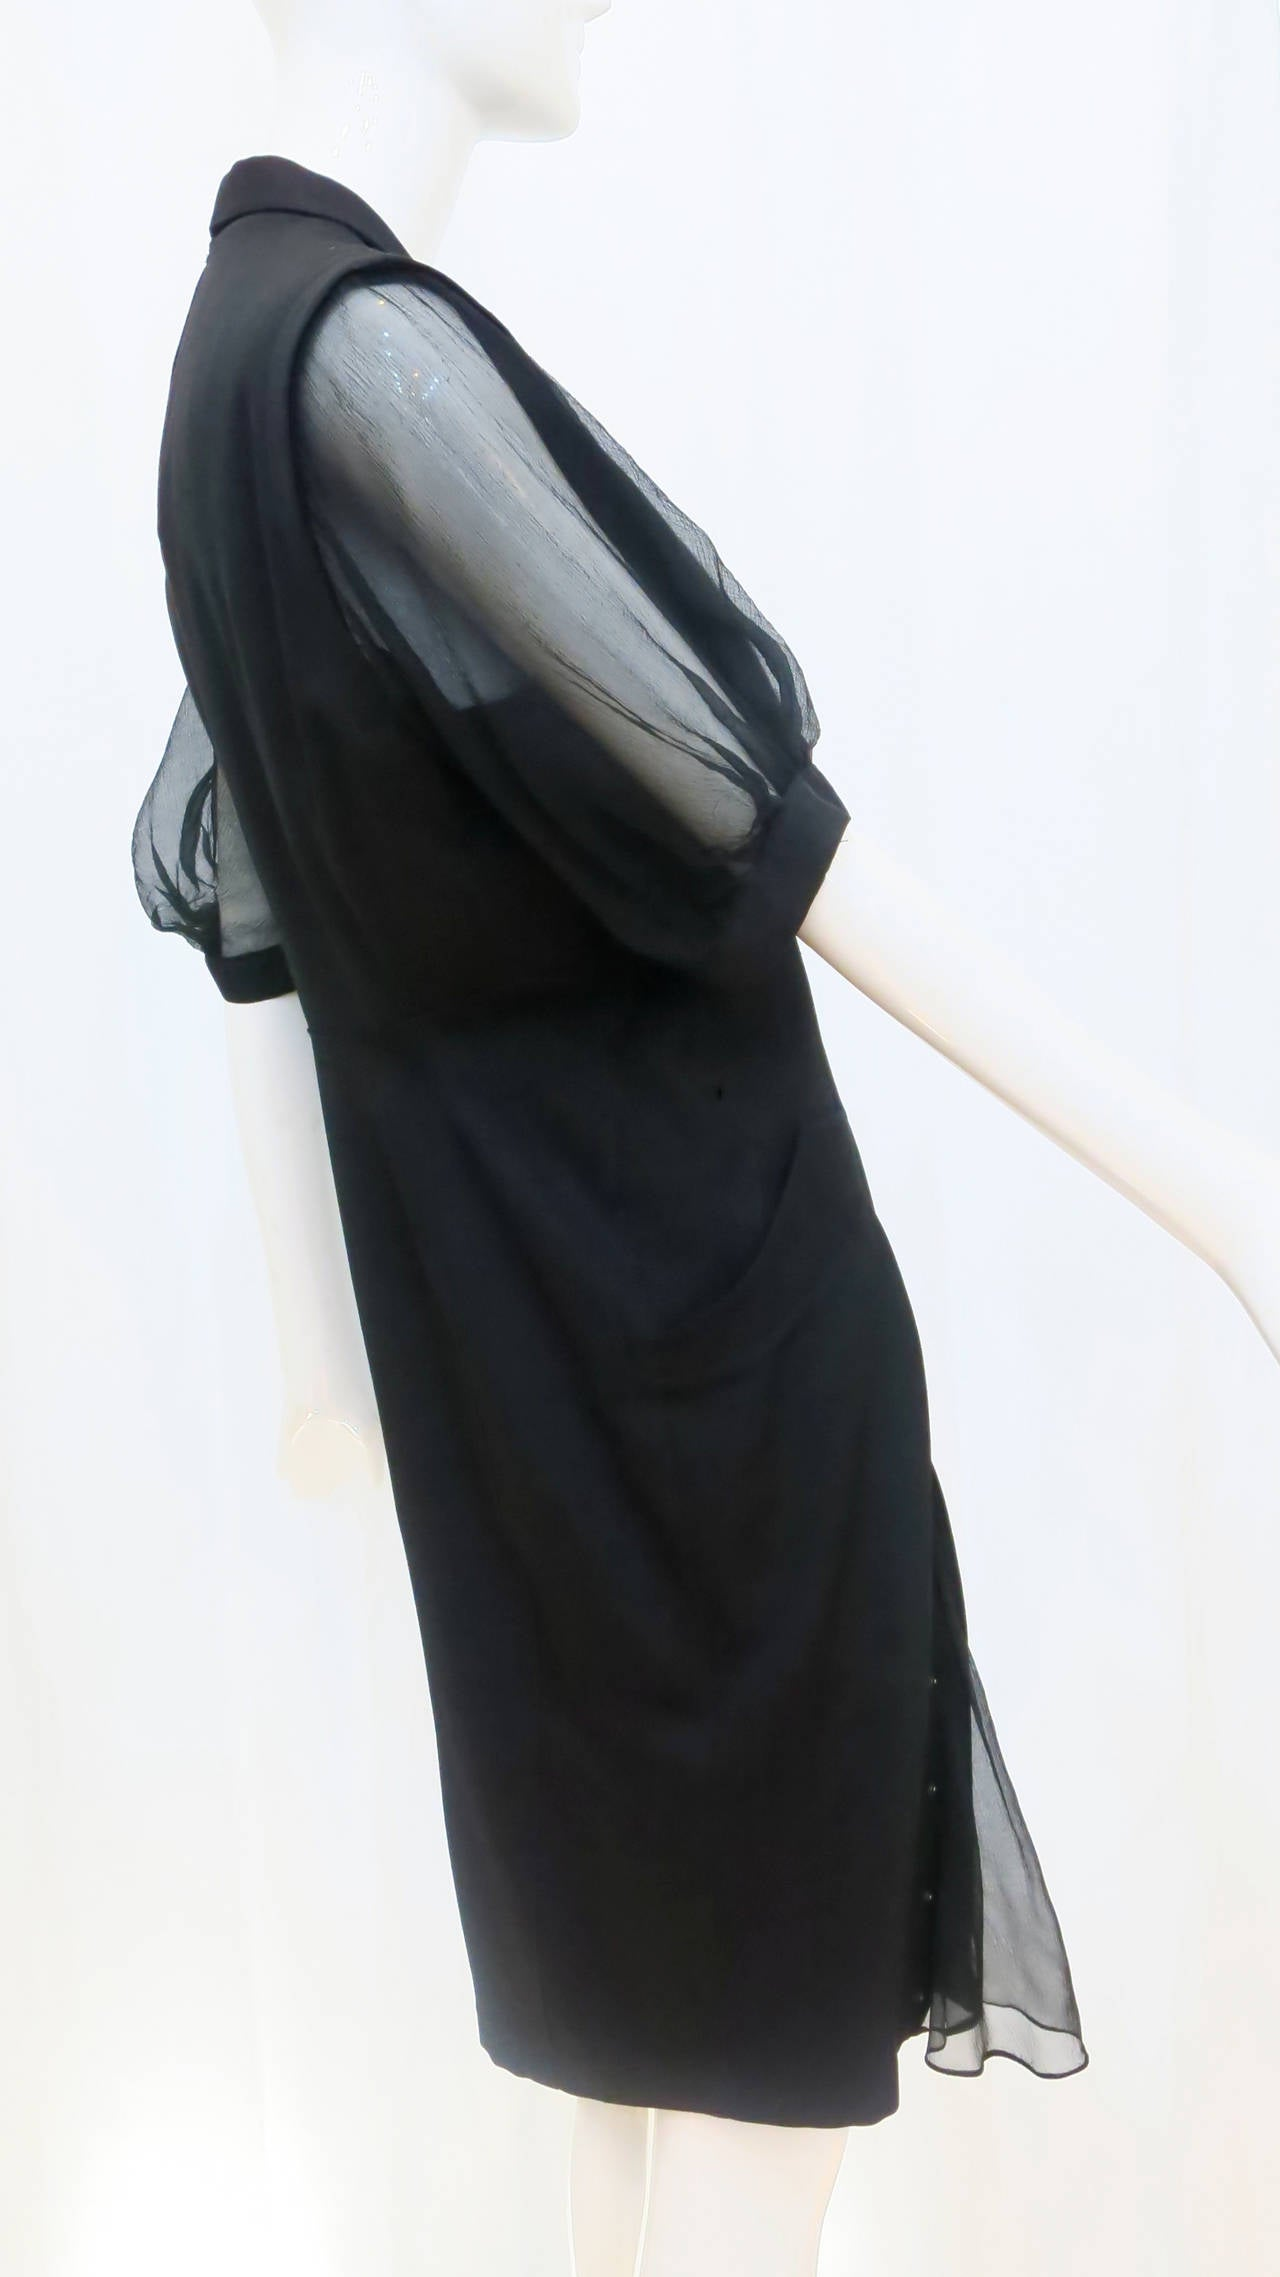 Showcasing his signature juxtaposition of sharp tailoring and sensual, revealing details, this Thierry Mugler shirt dress from the 1980s features sheer, billowy sleeves, a peek-a-boo sheer fabric panel at the thigh (which can be revealed or snapped